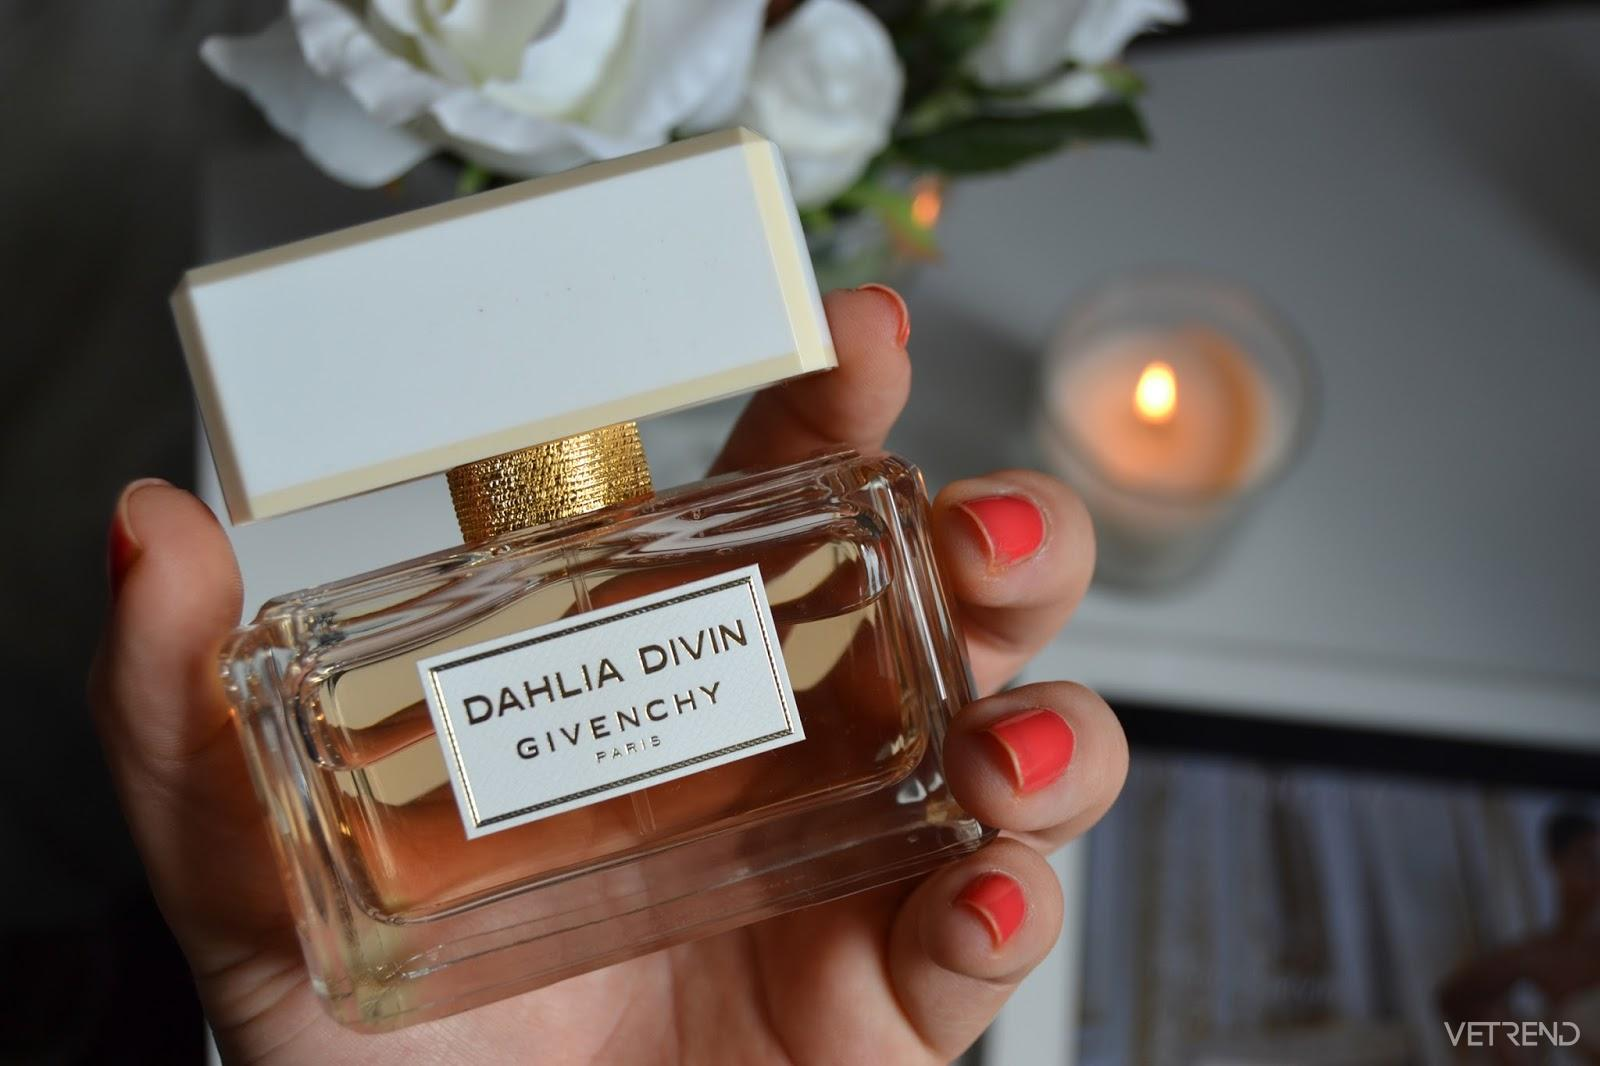 Givenchy blanc divine